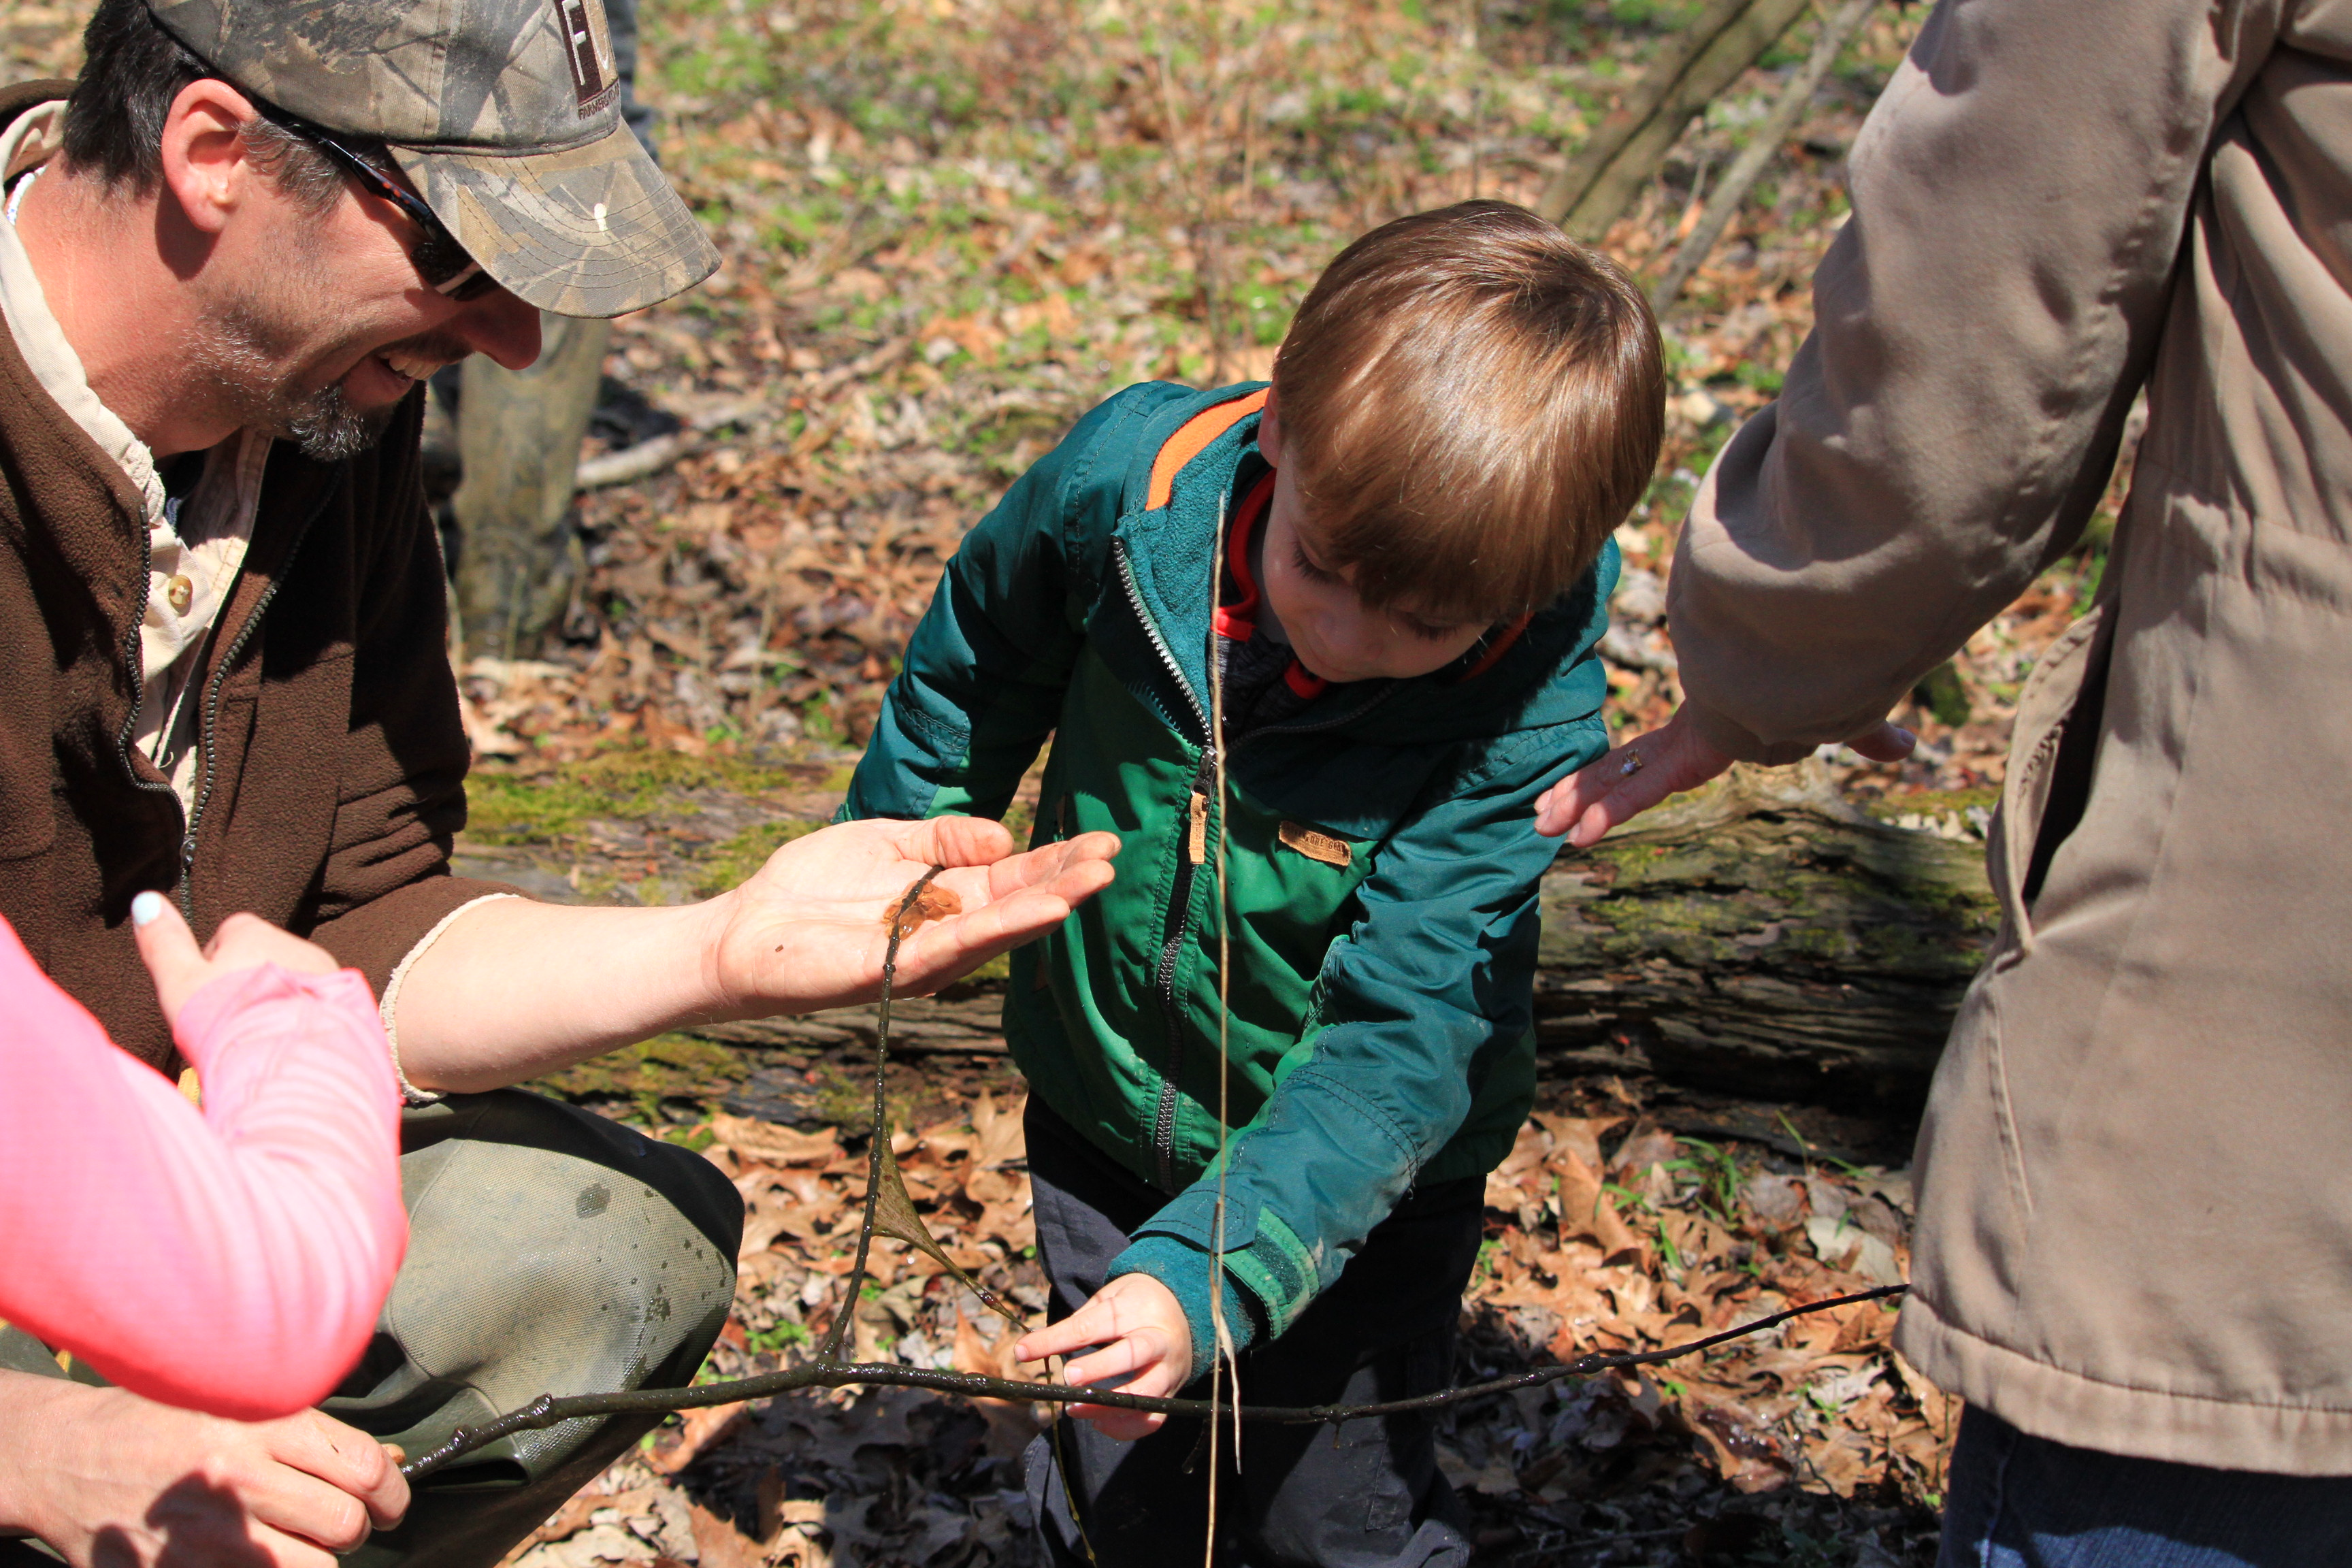 Discovering Slippery Slimy Creatures And Creepy Crawly Bugs Crawford County Now